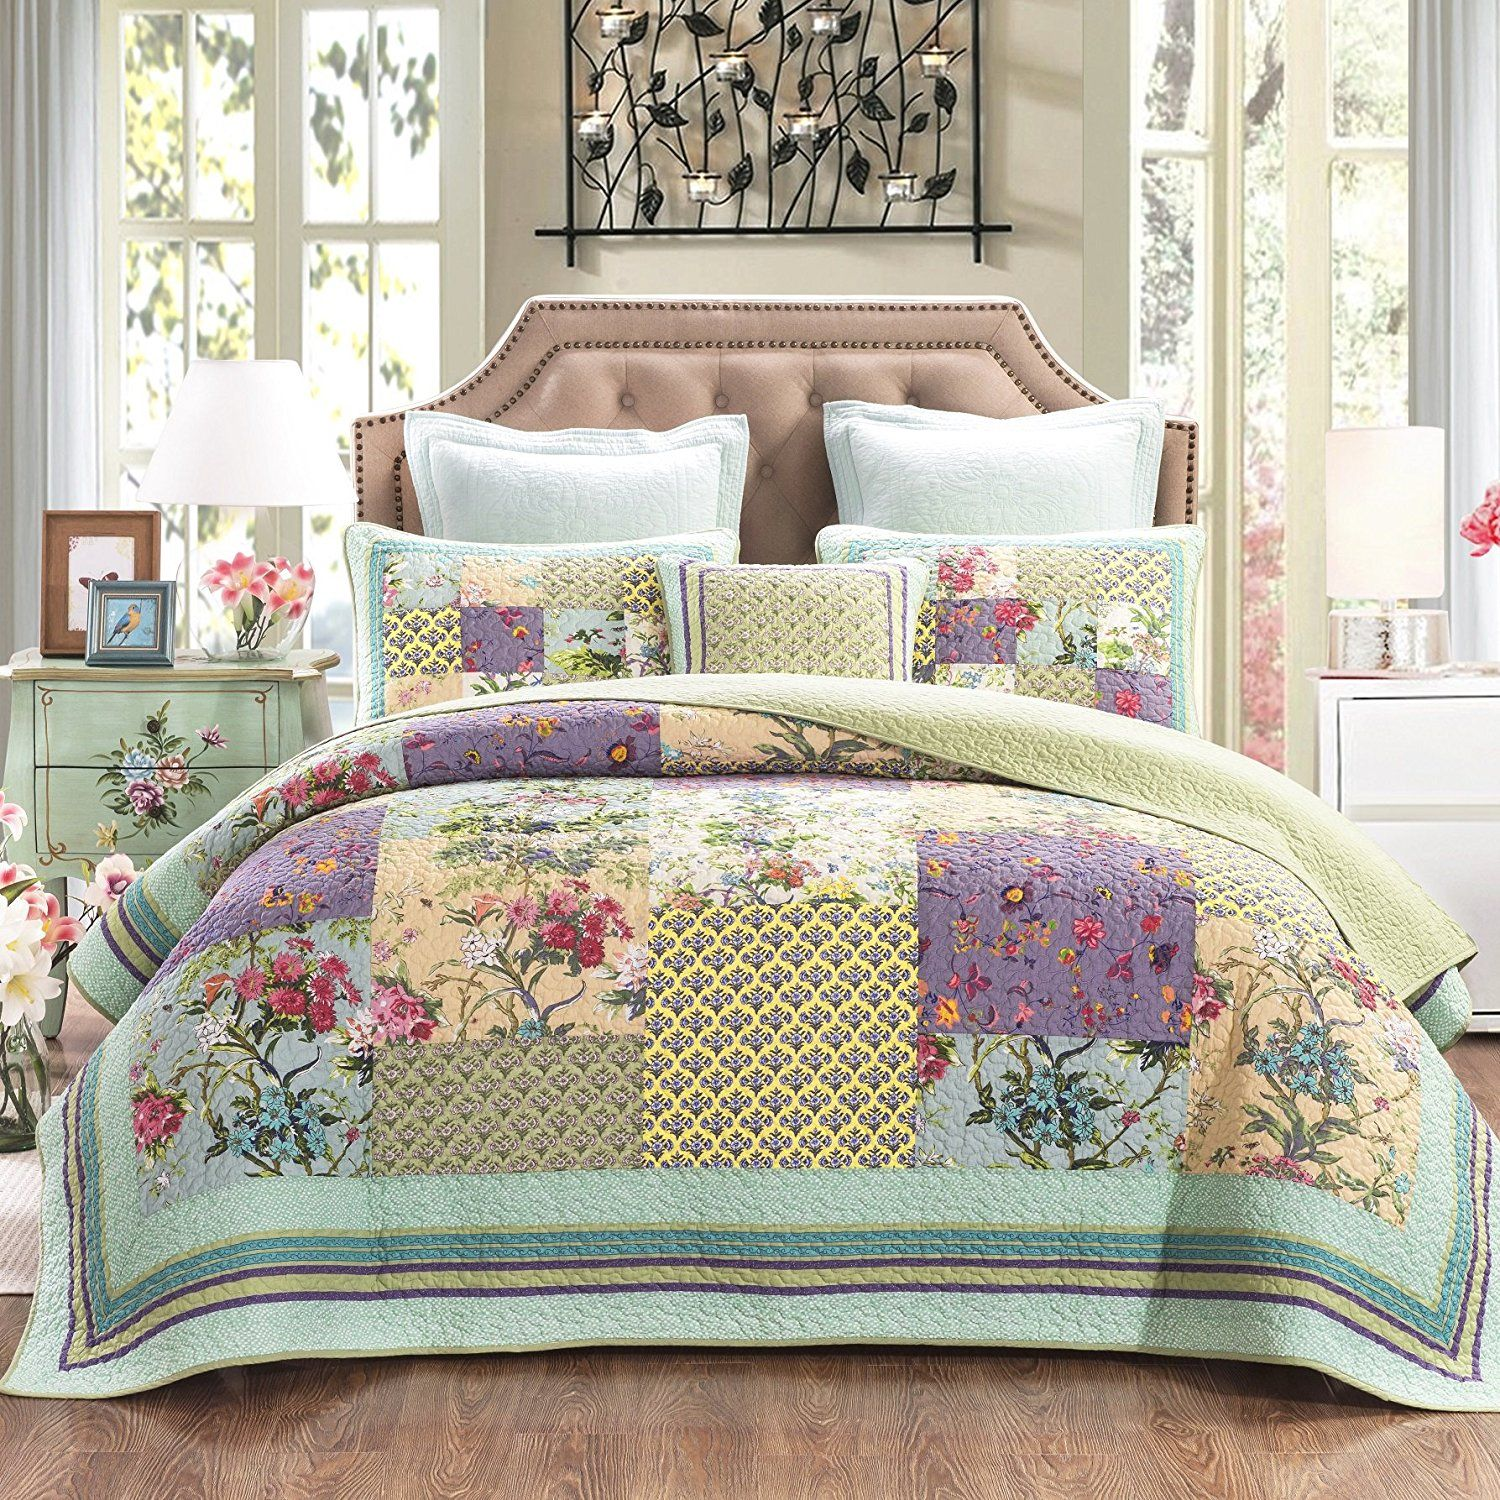 Patchwork Quilt Bedding Sets.Pin On Quilting